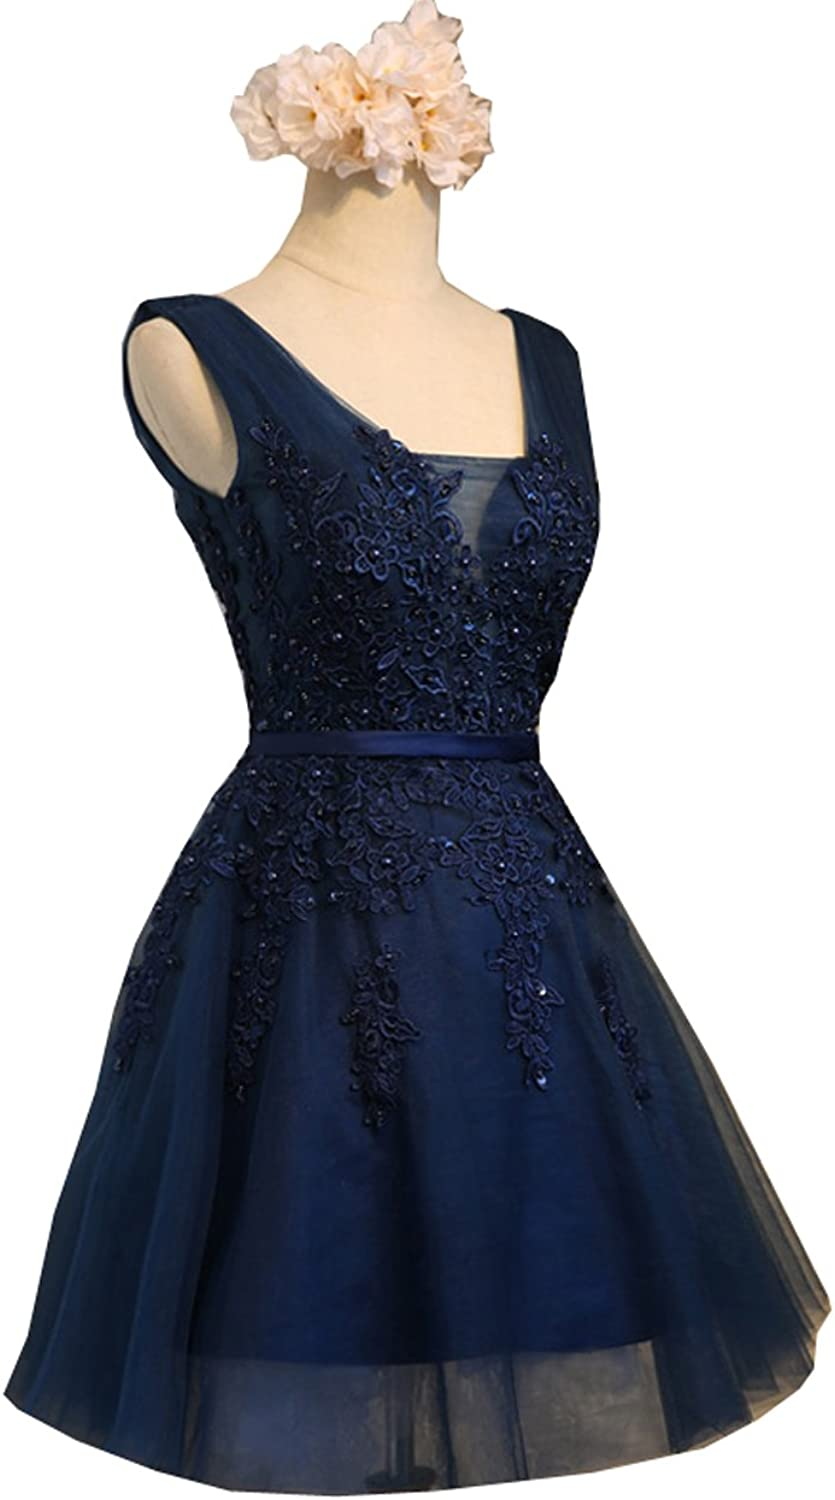 QiJunGe Short Prom Homecoming Dresses Beaded Formal Gowns with Lace Up Back